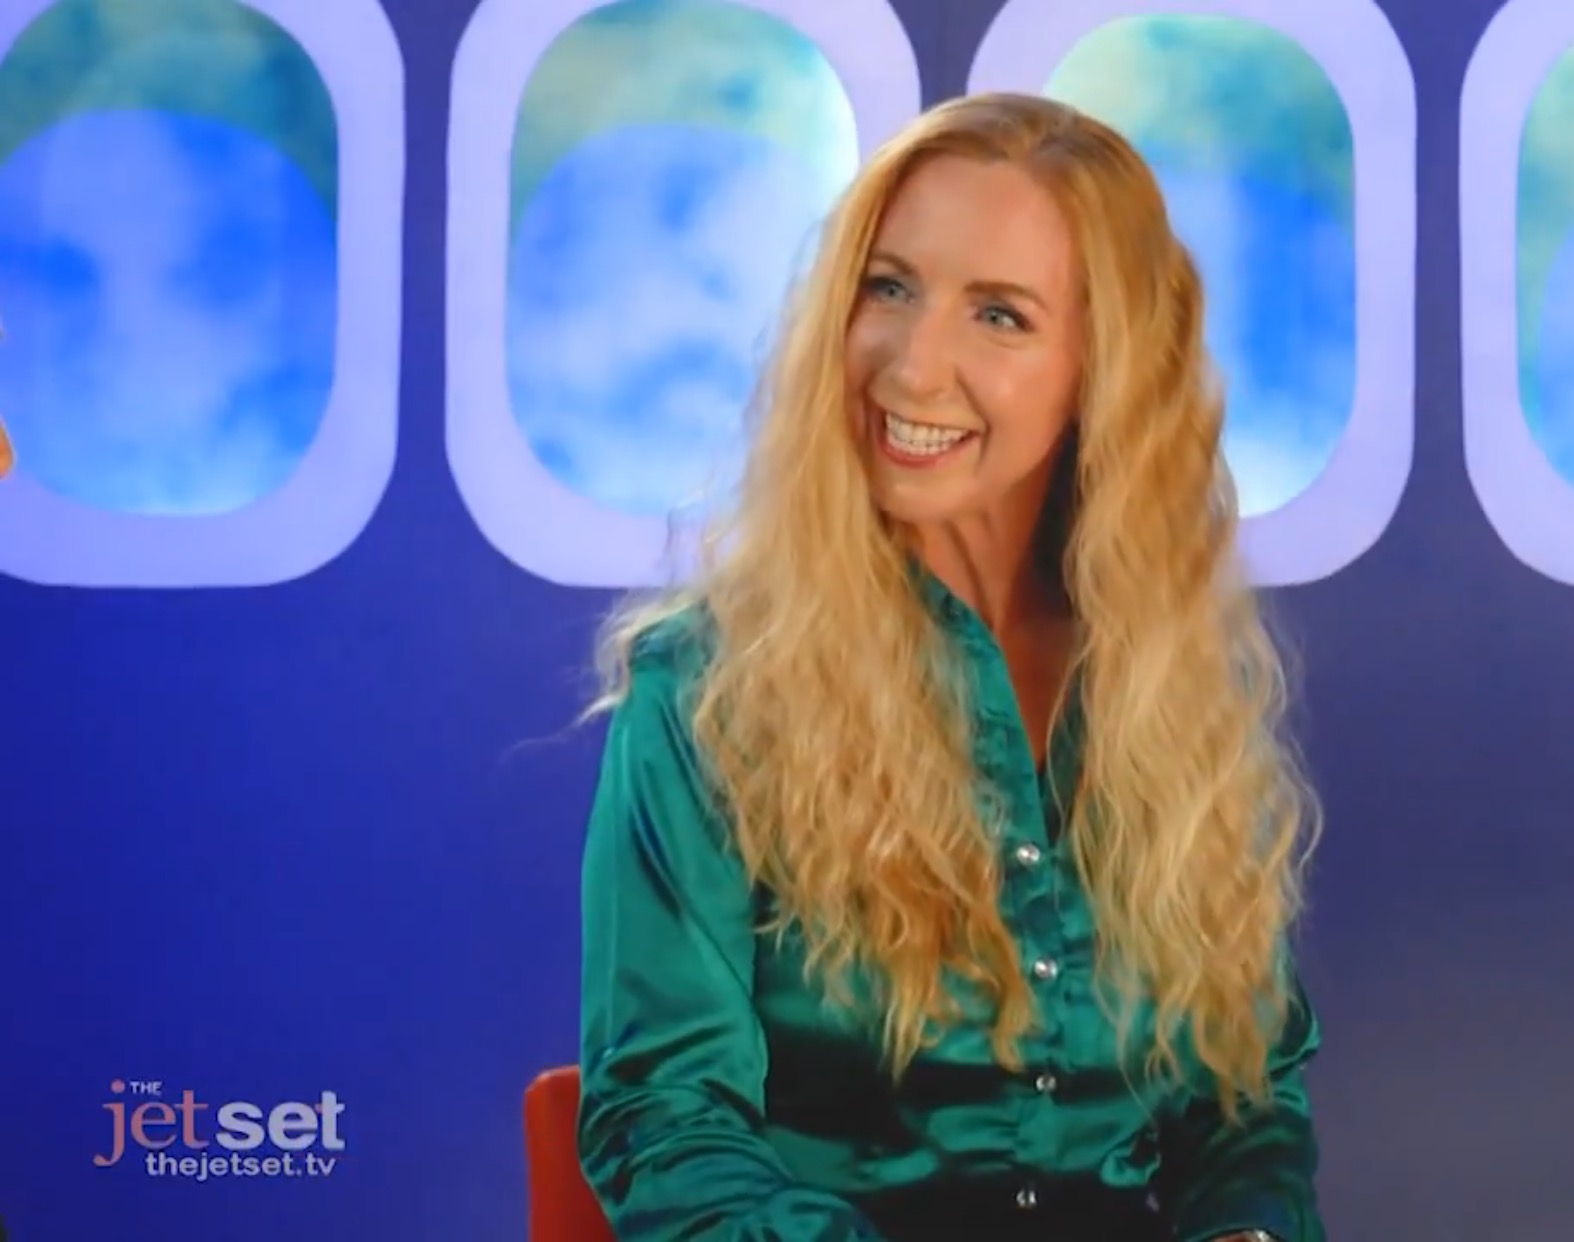 Read more about the article Captain Laura Helps Kick Off Season 3 of the Jet Set TV Show!